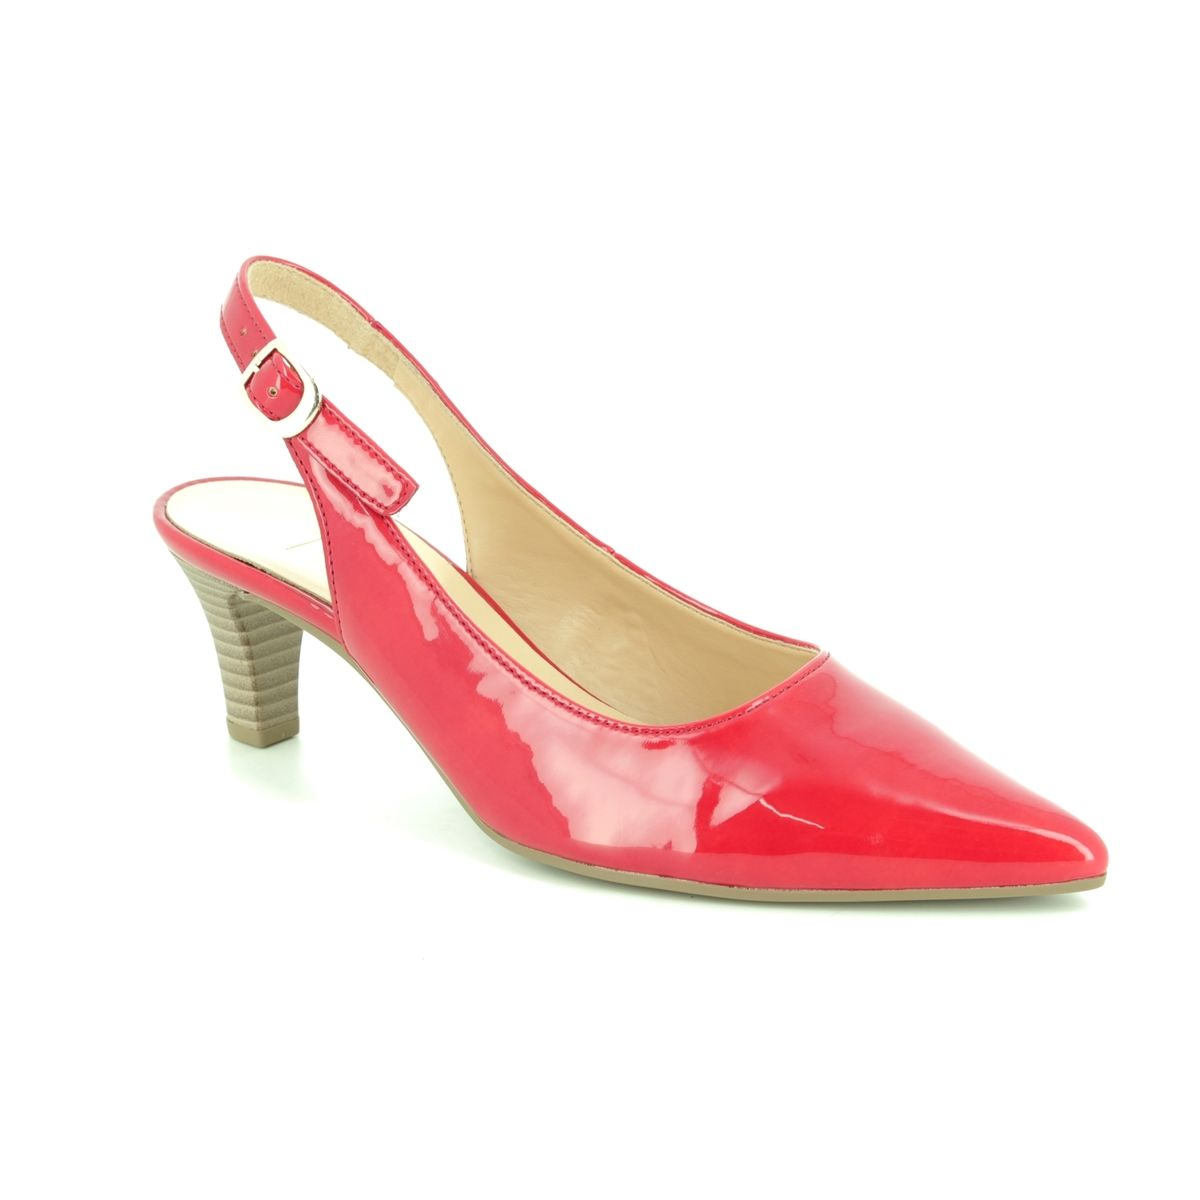 1869d8ef8c2 Gabor Slingback Shoes - Red patent - 21.550.75 HUME 2